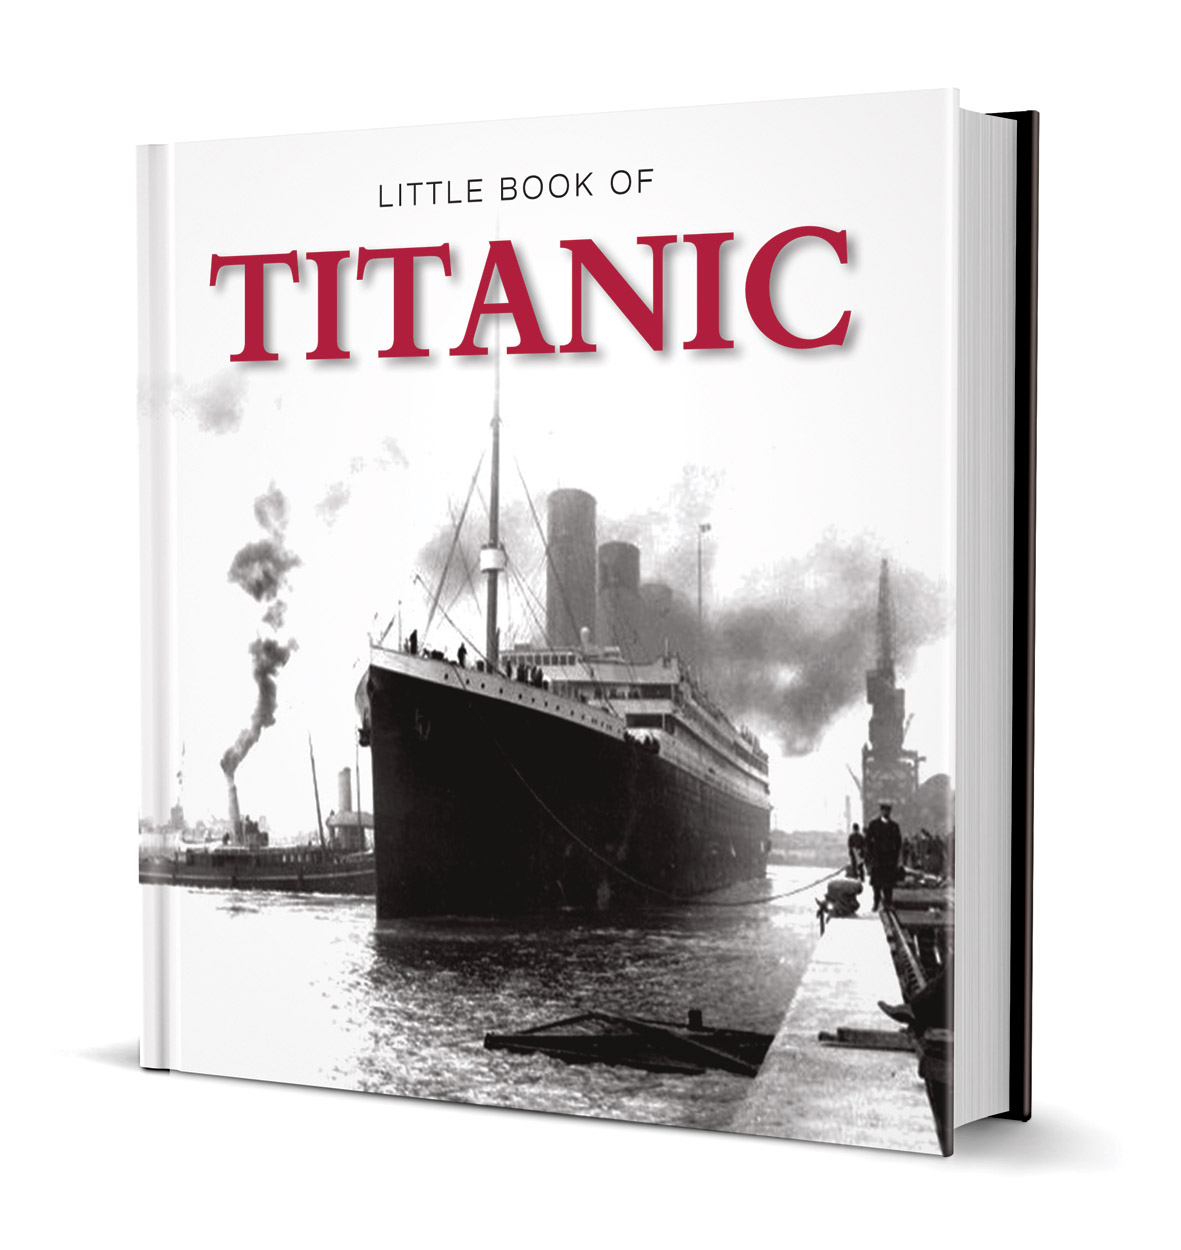 Little Book Of The Titanic